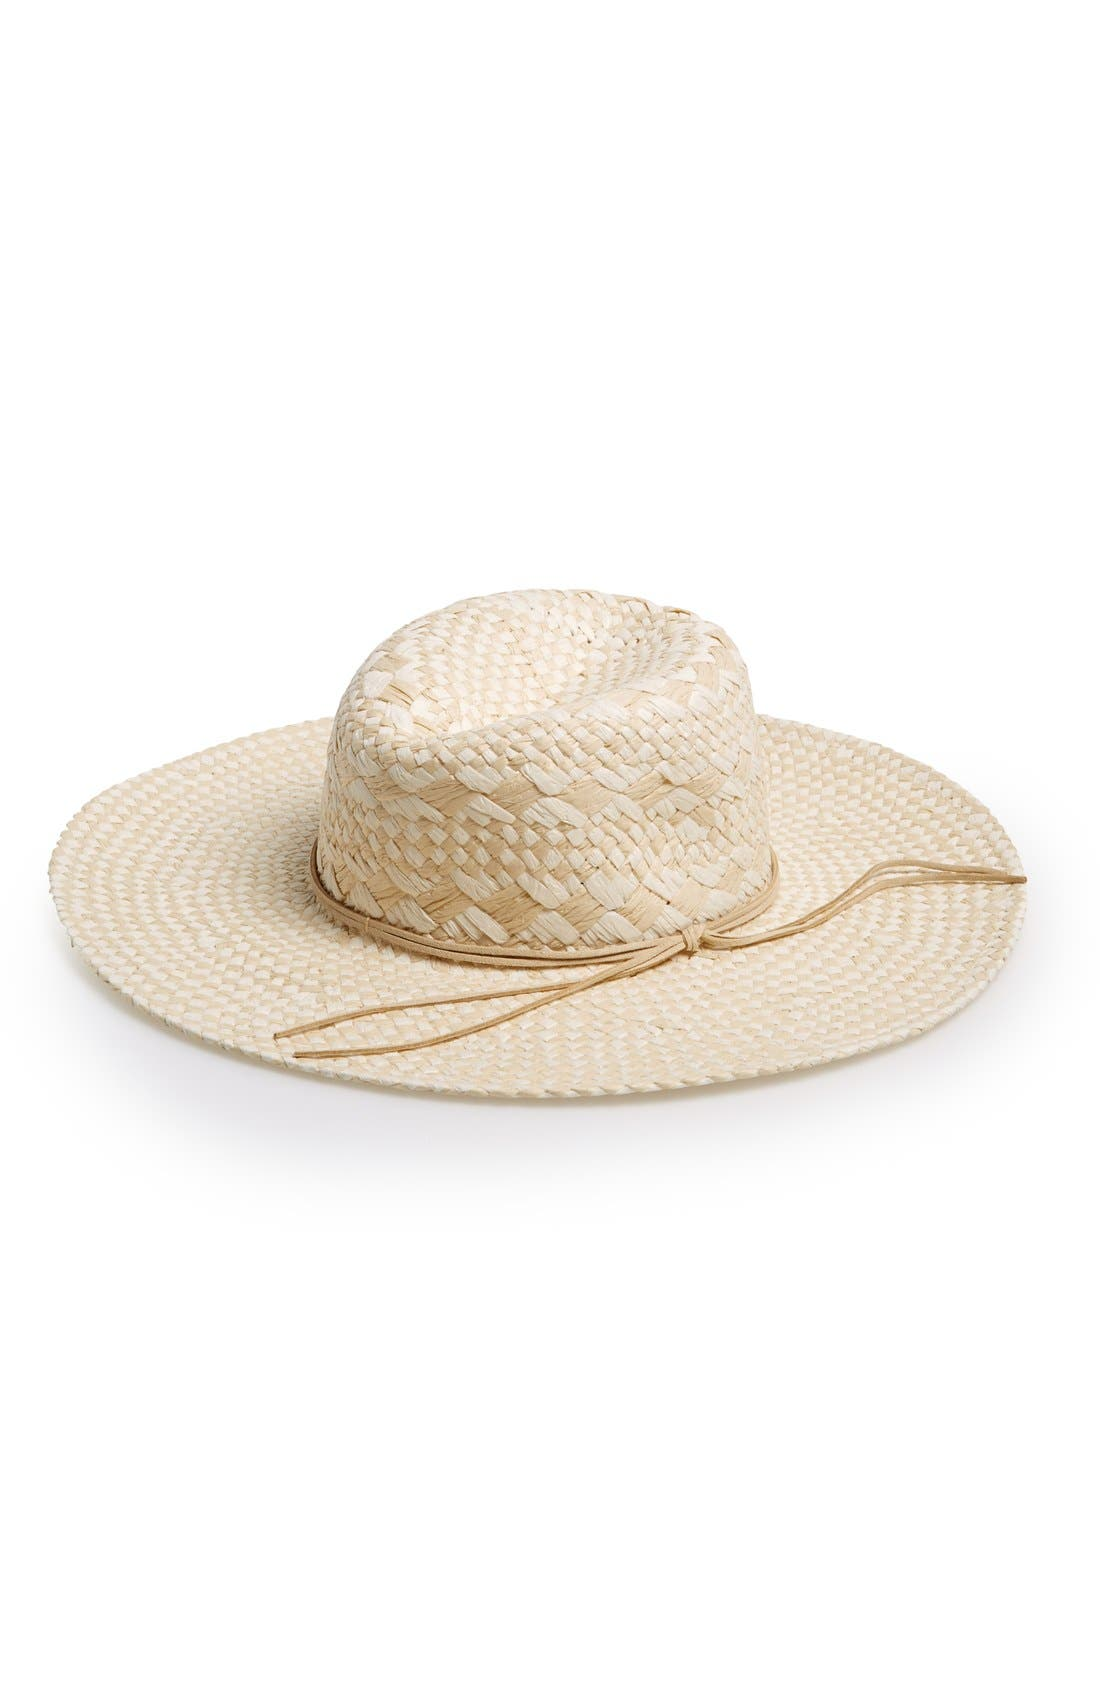 Main Image - David & Young Diamond Weave Floppy Straw Hat